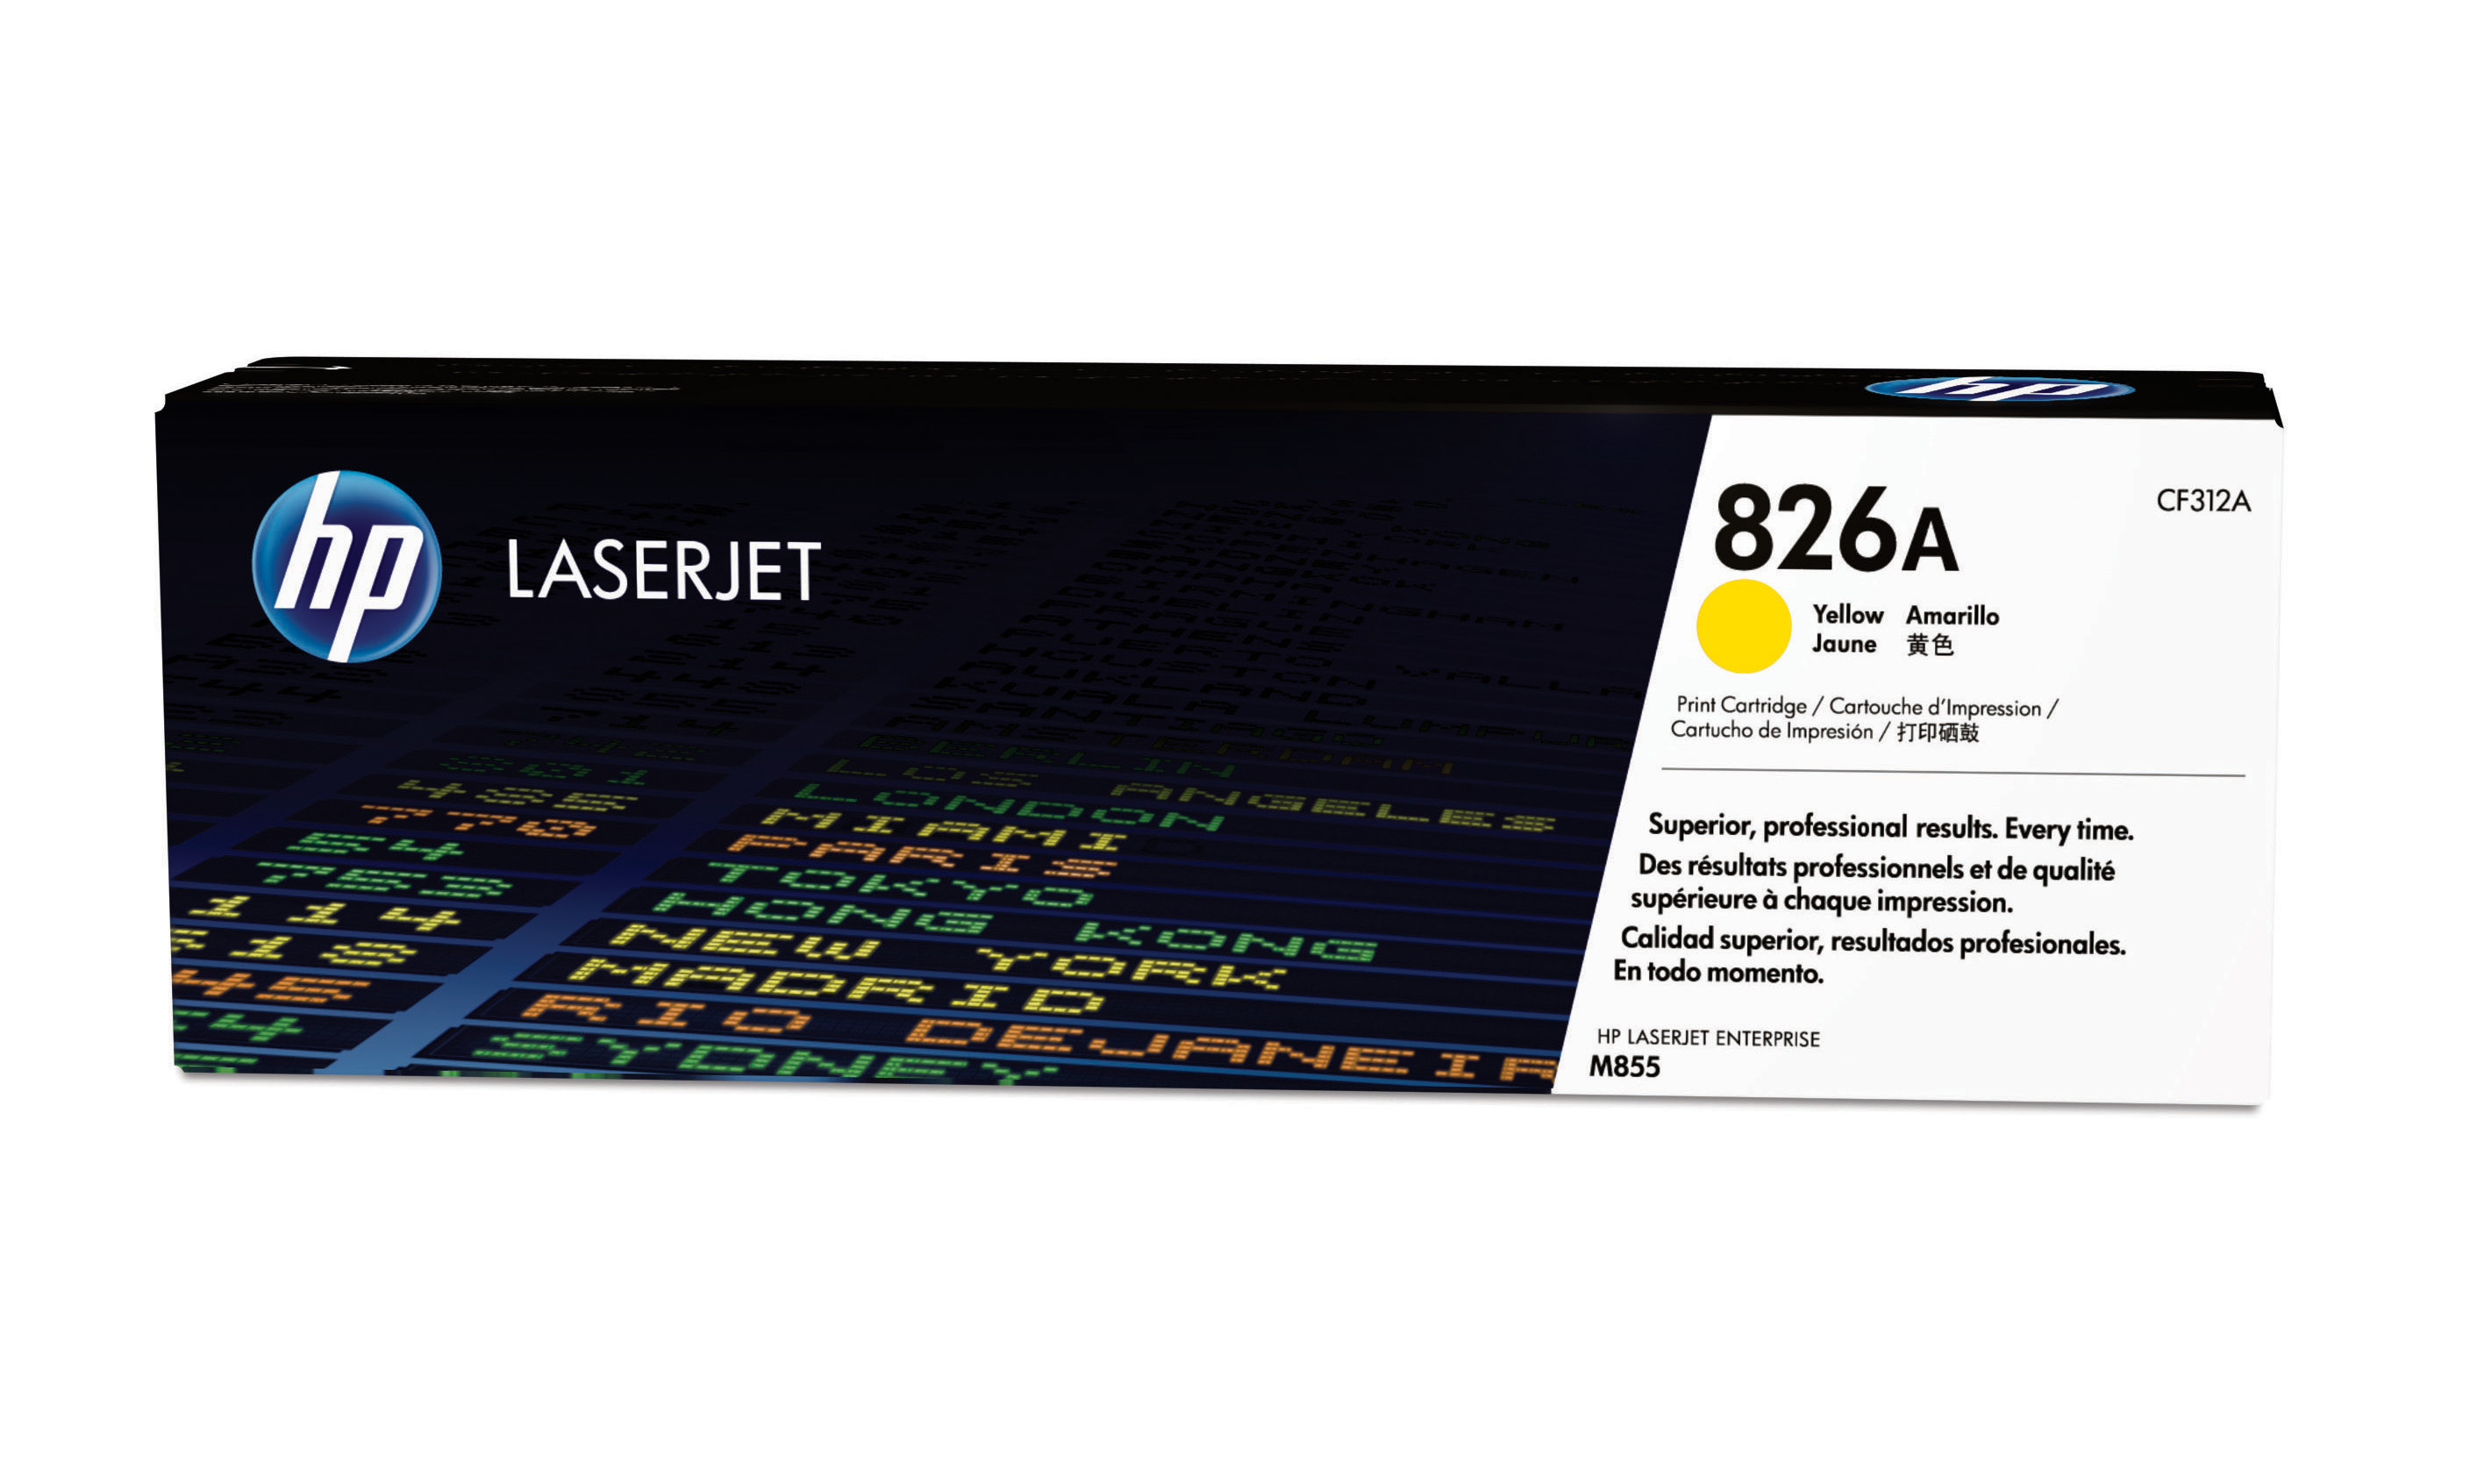 HP 826A Yellow Toner Cartridge (CF312A)